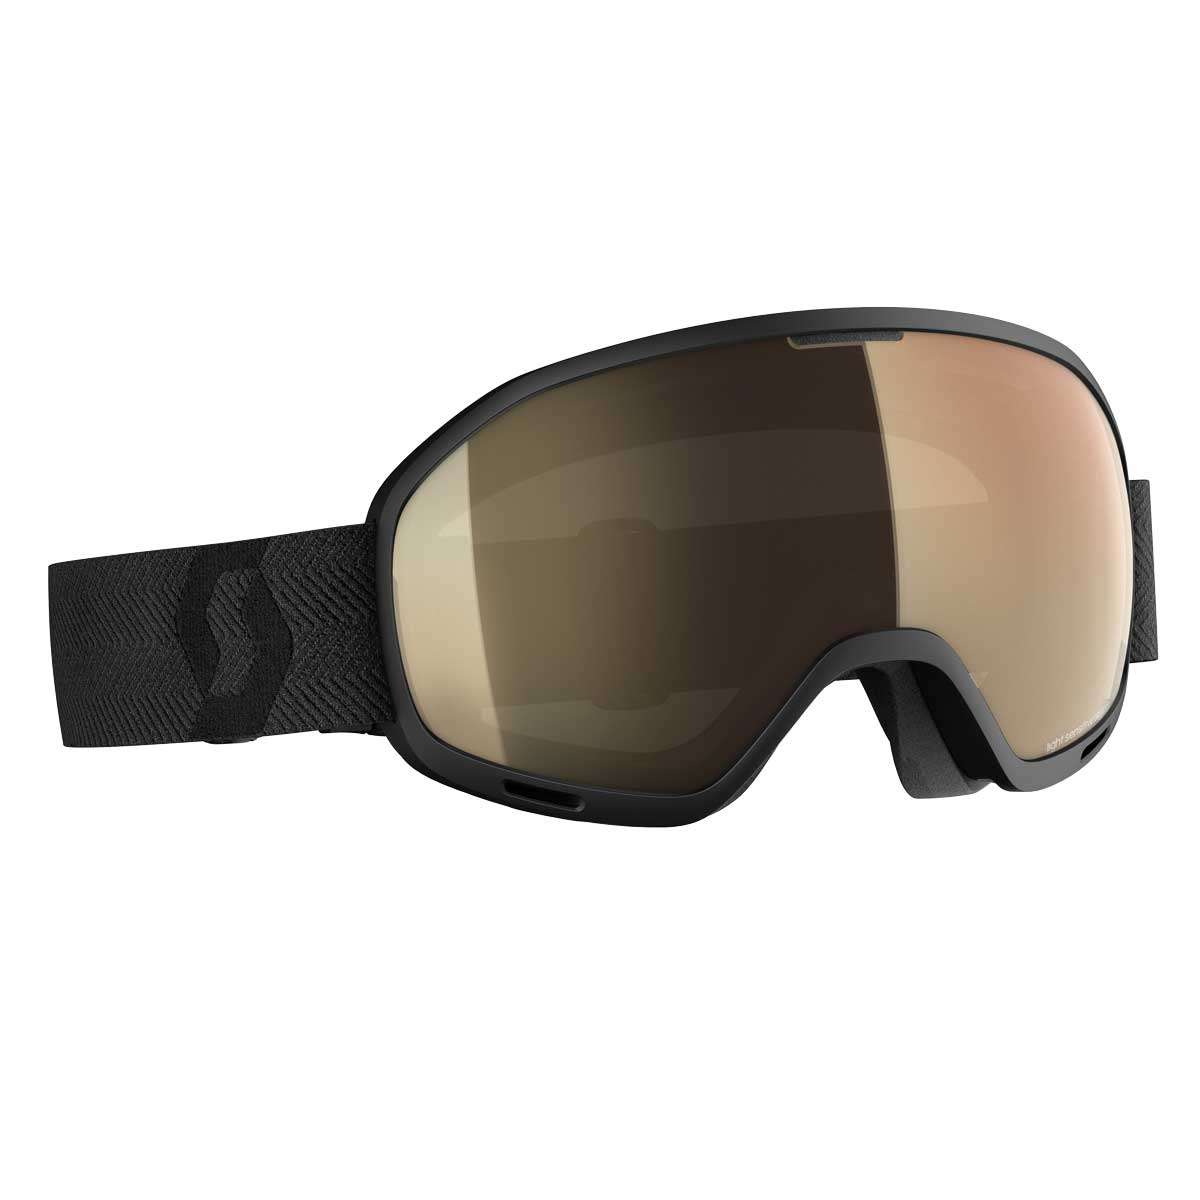 scott ulimited otg 2 goggle in black with bronze chrome